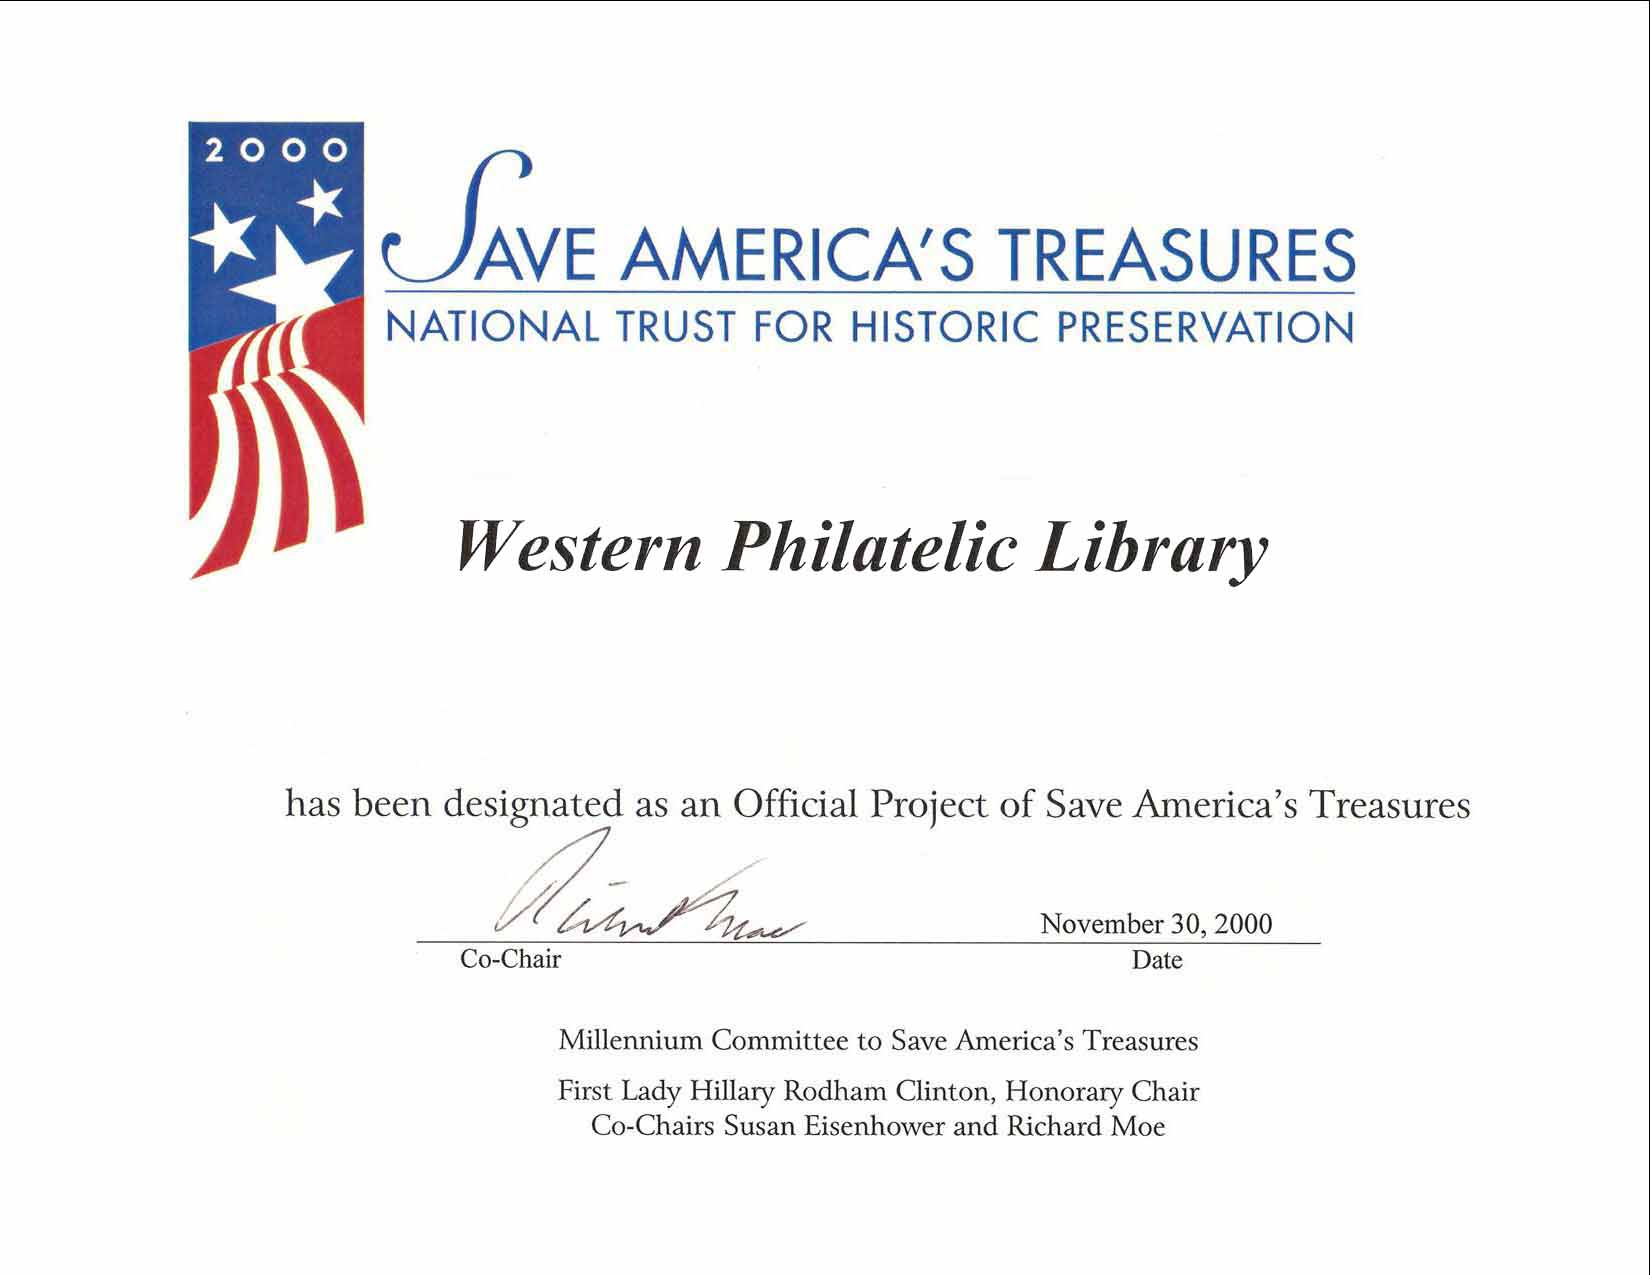 The New Western Philatelic Library